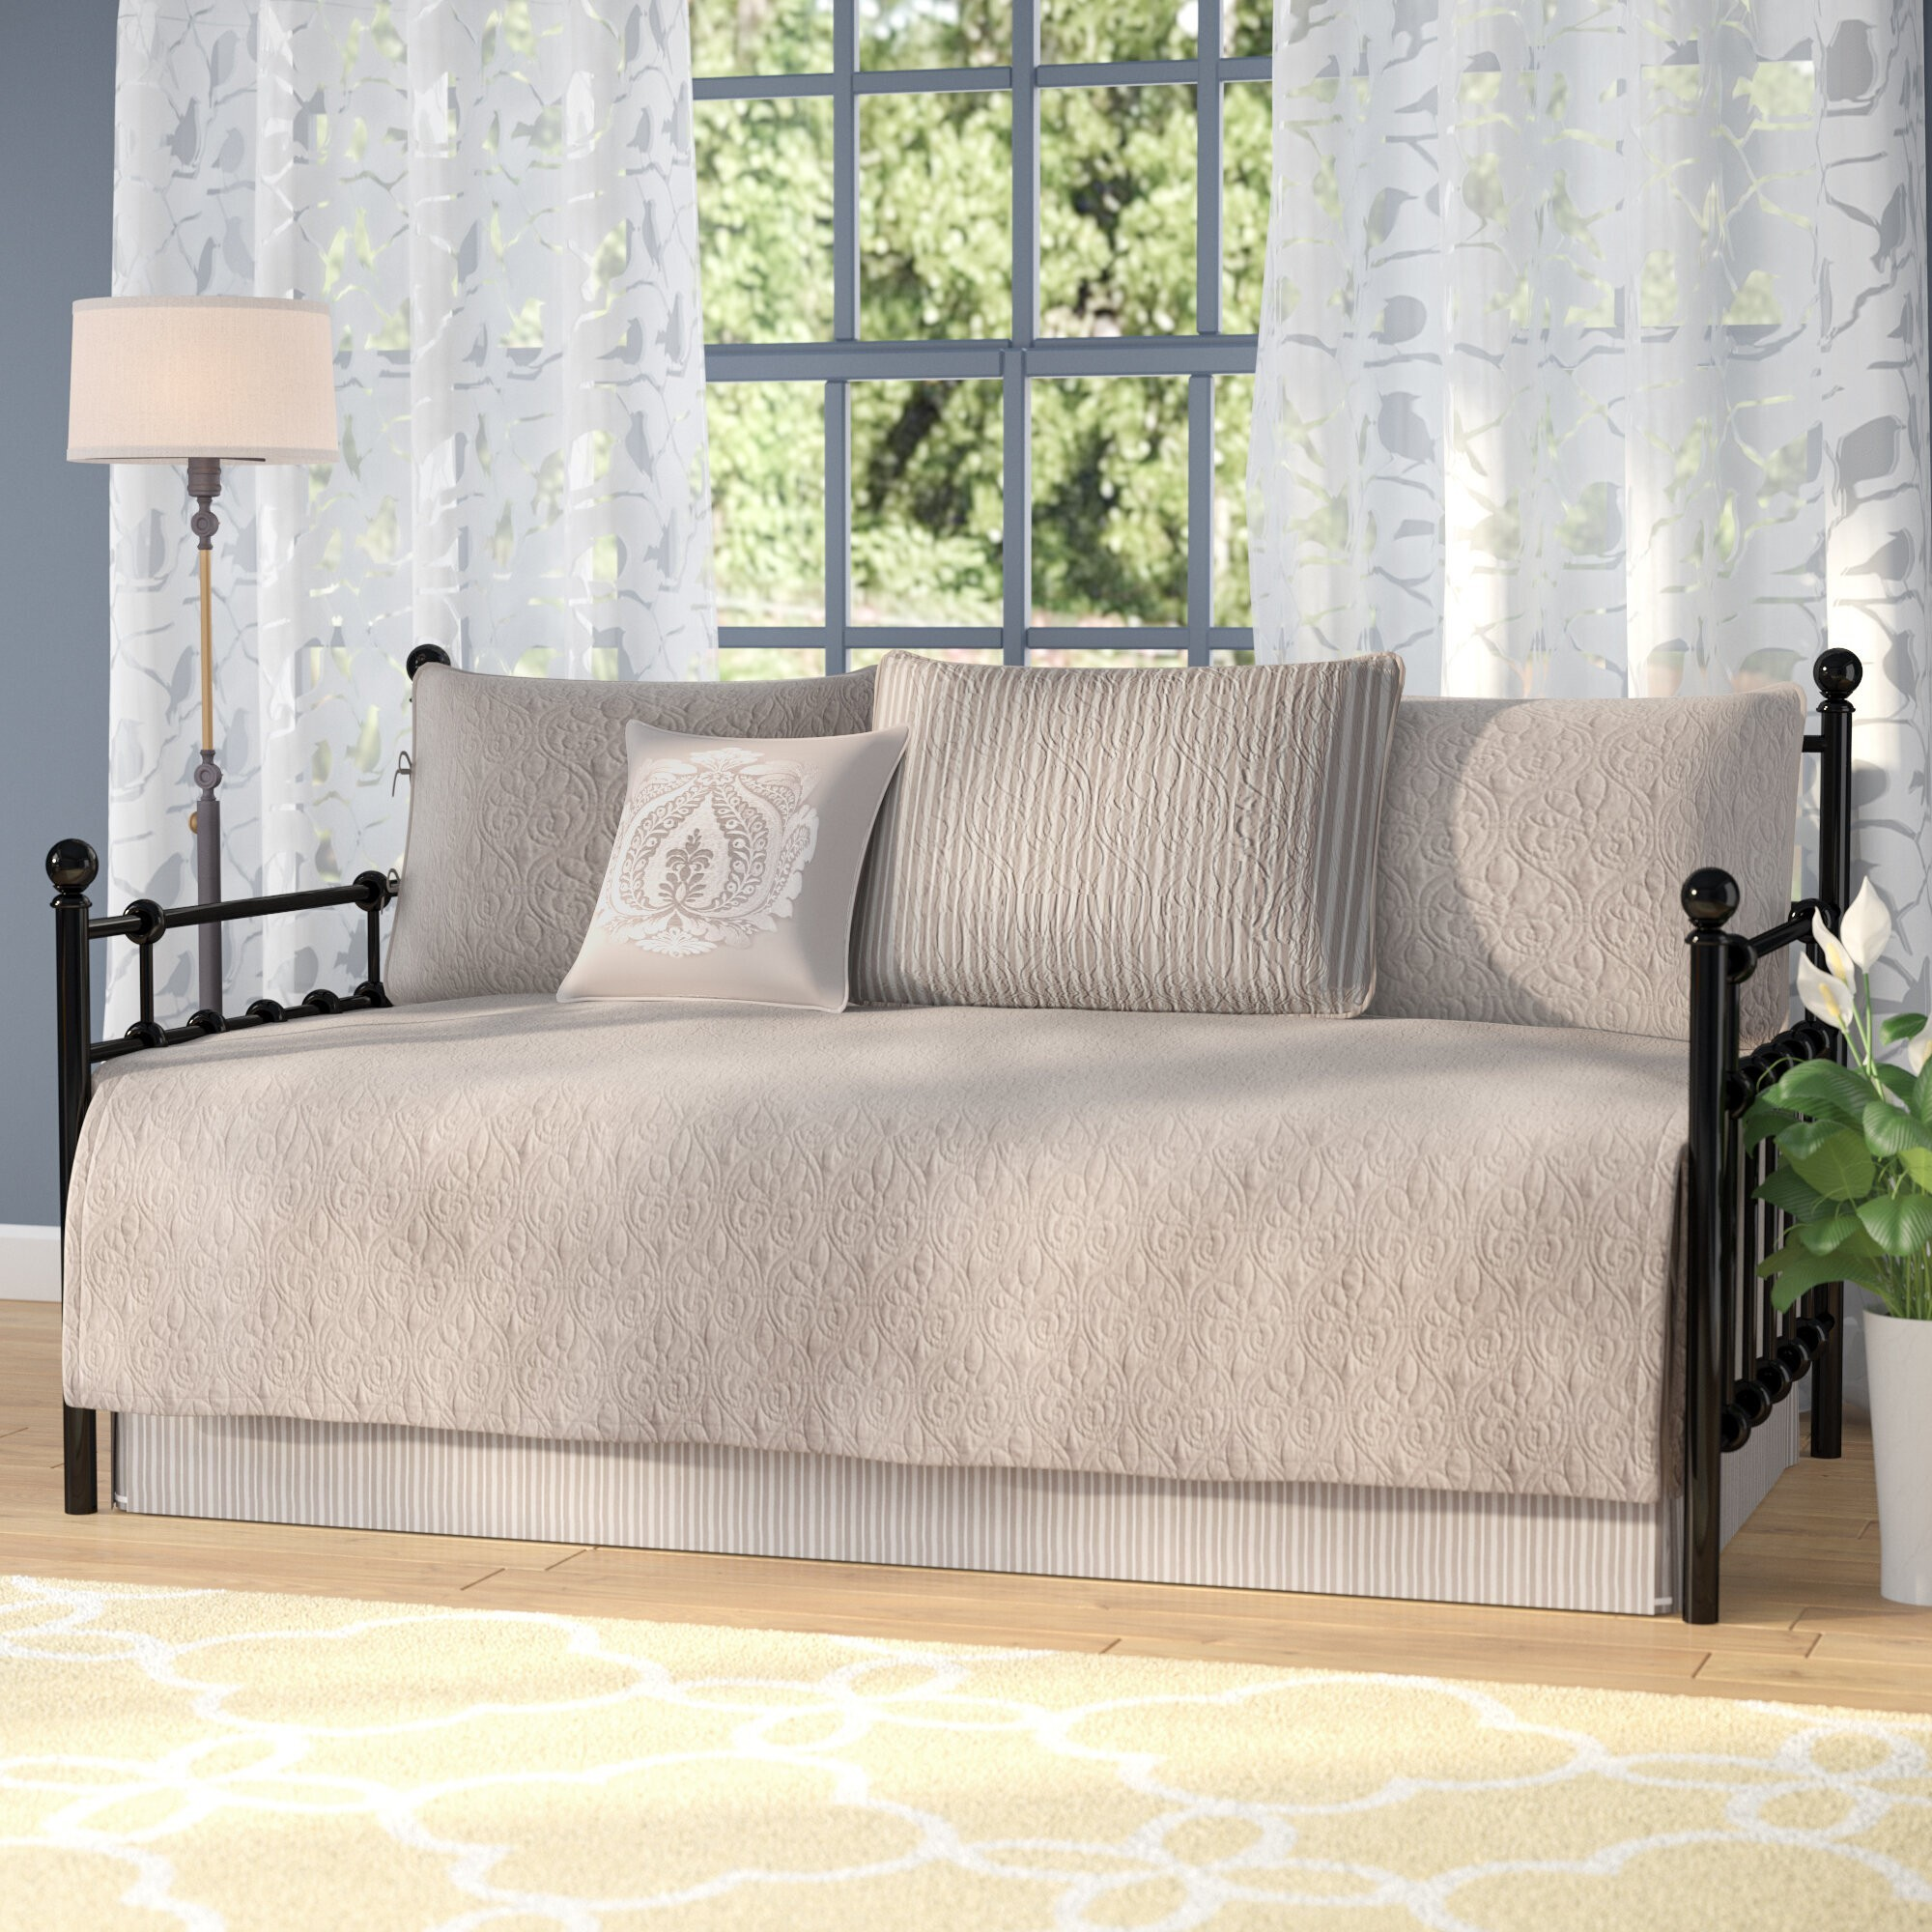 How To Choose Daybed Covers & Sets